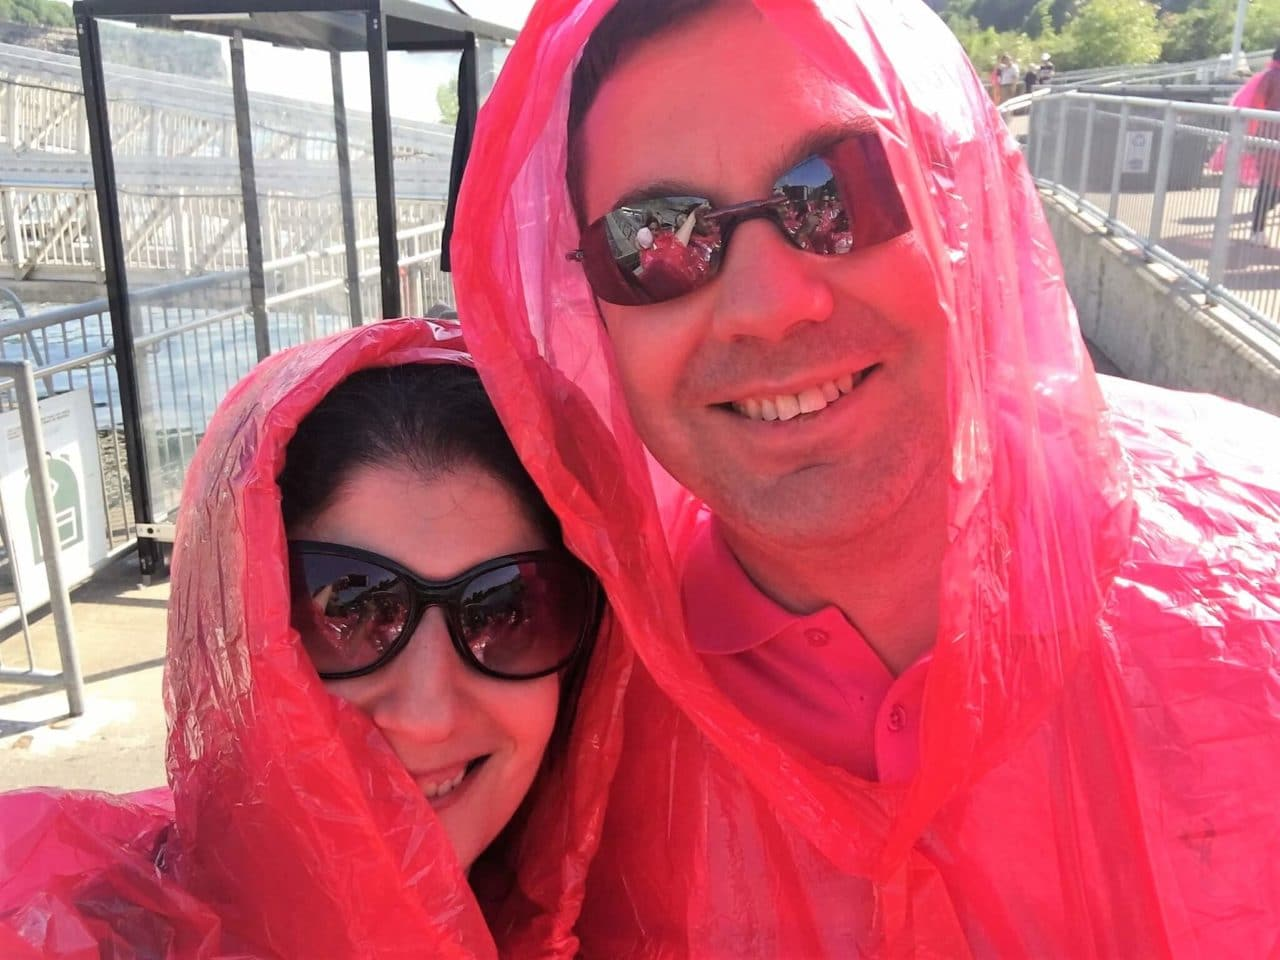 We have our ponchos and we are ready to board the boat! -